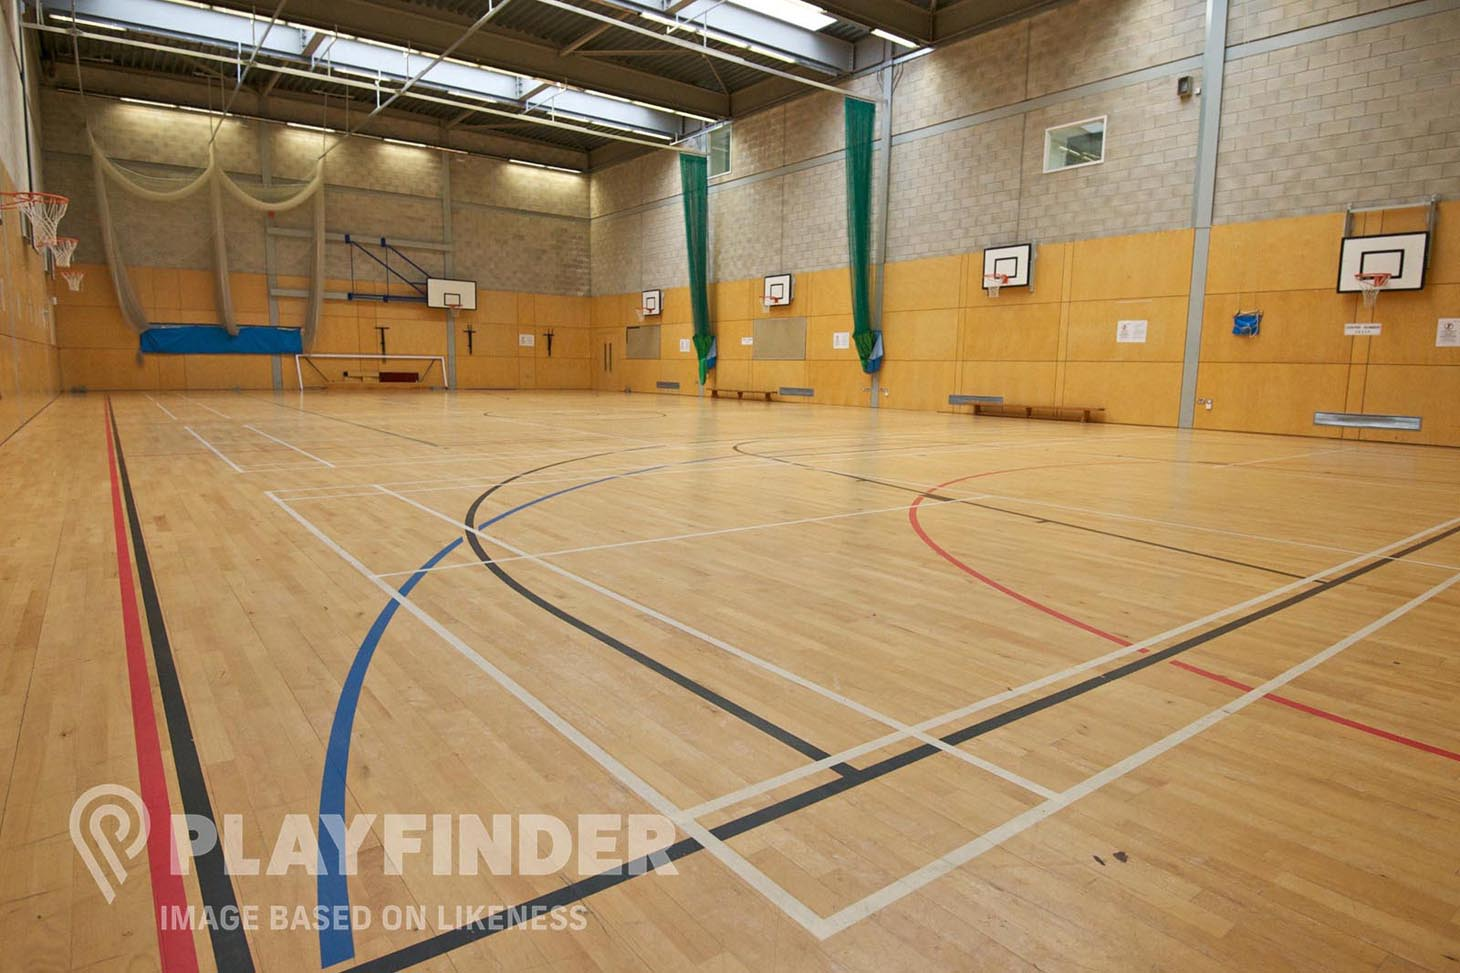 Altwood Church of England School Indoor basketball court